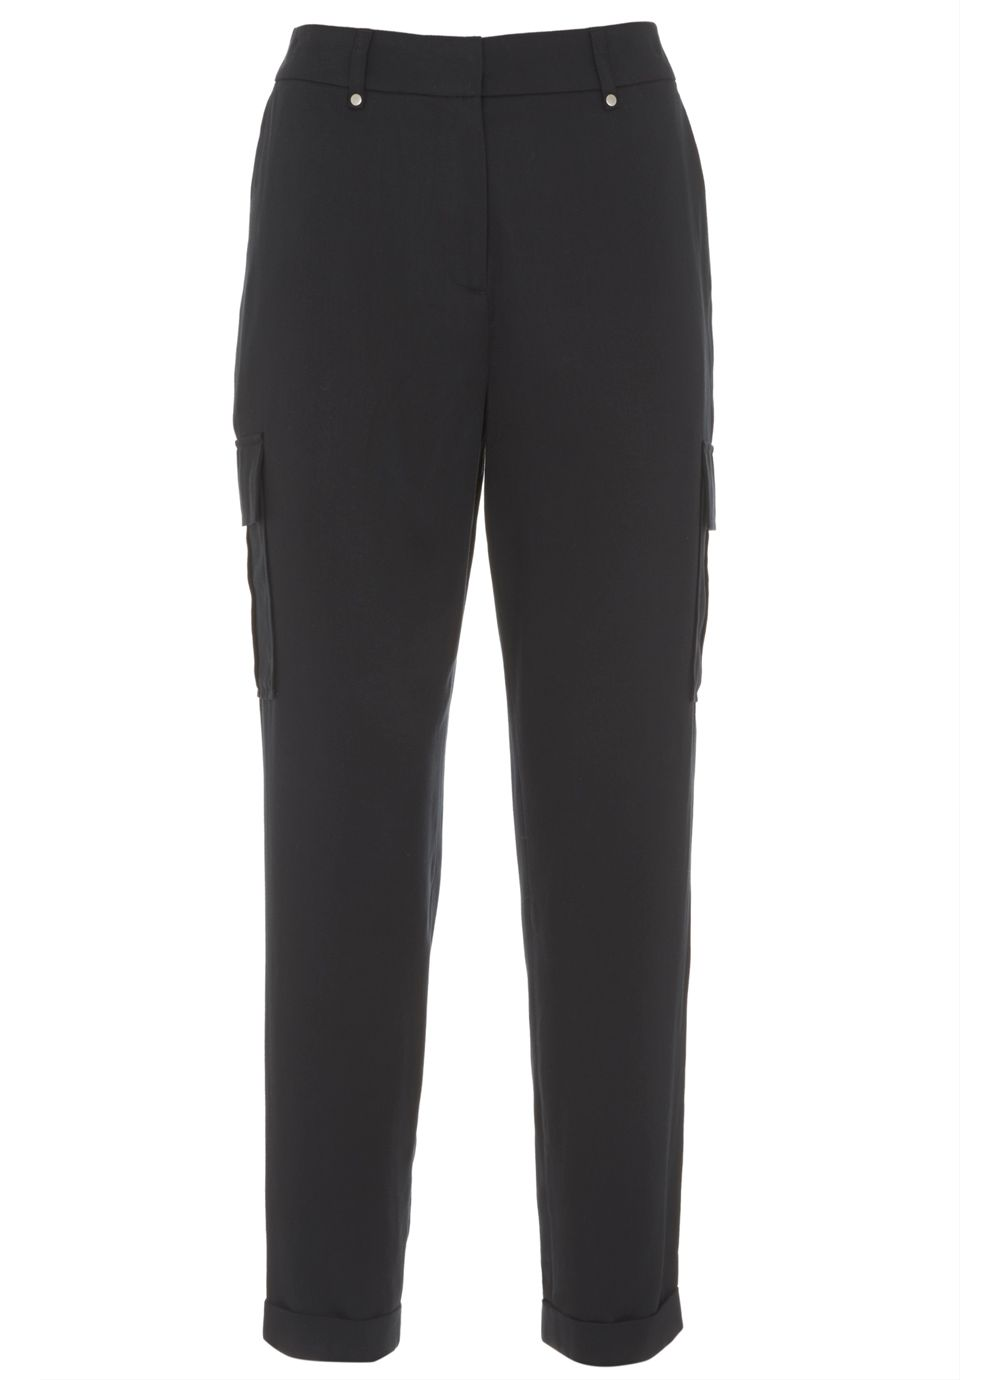 Mint Velvet Ink Cargo Sports Pant, Dark Blue